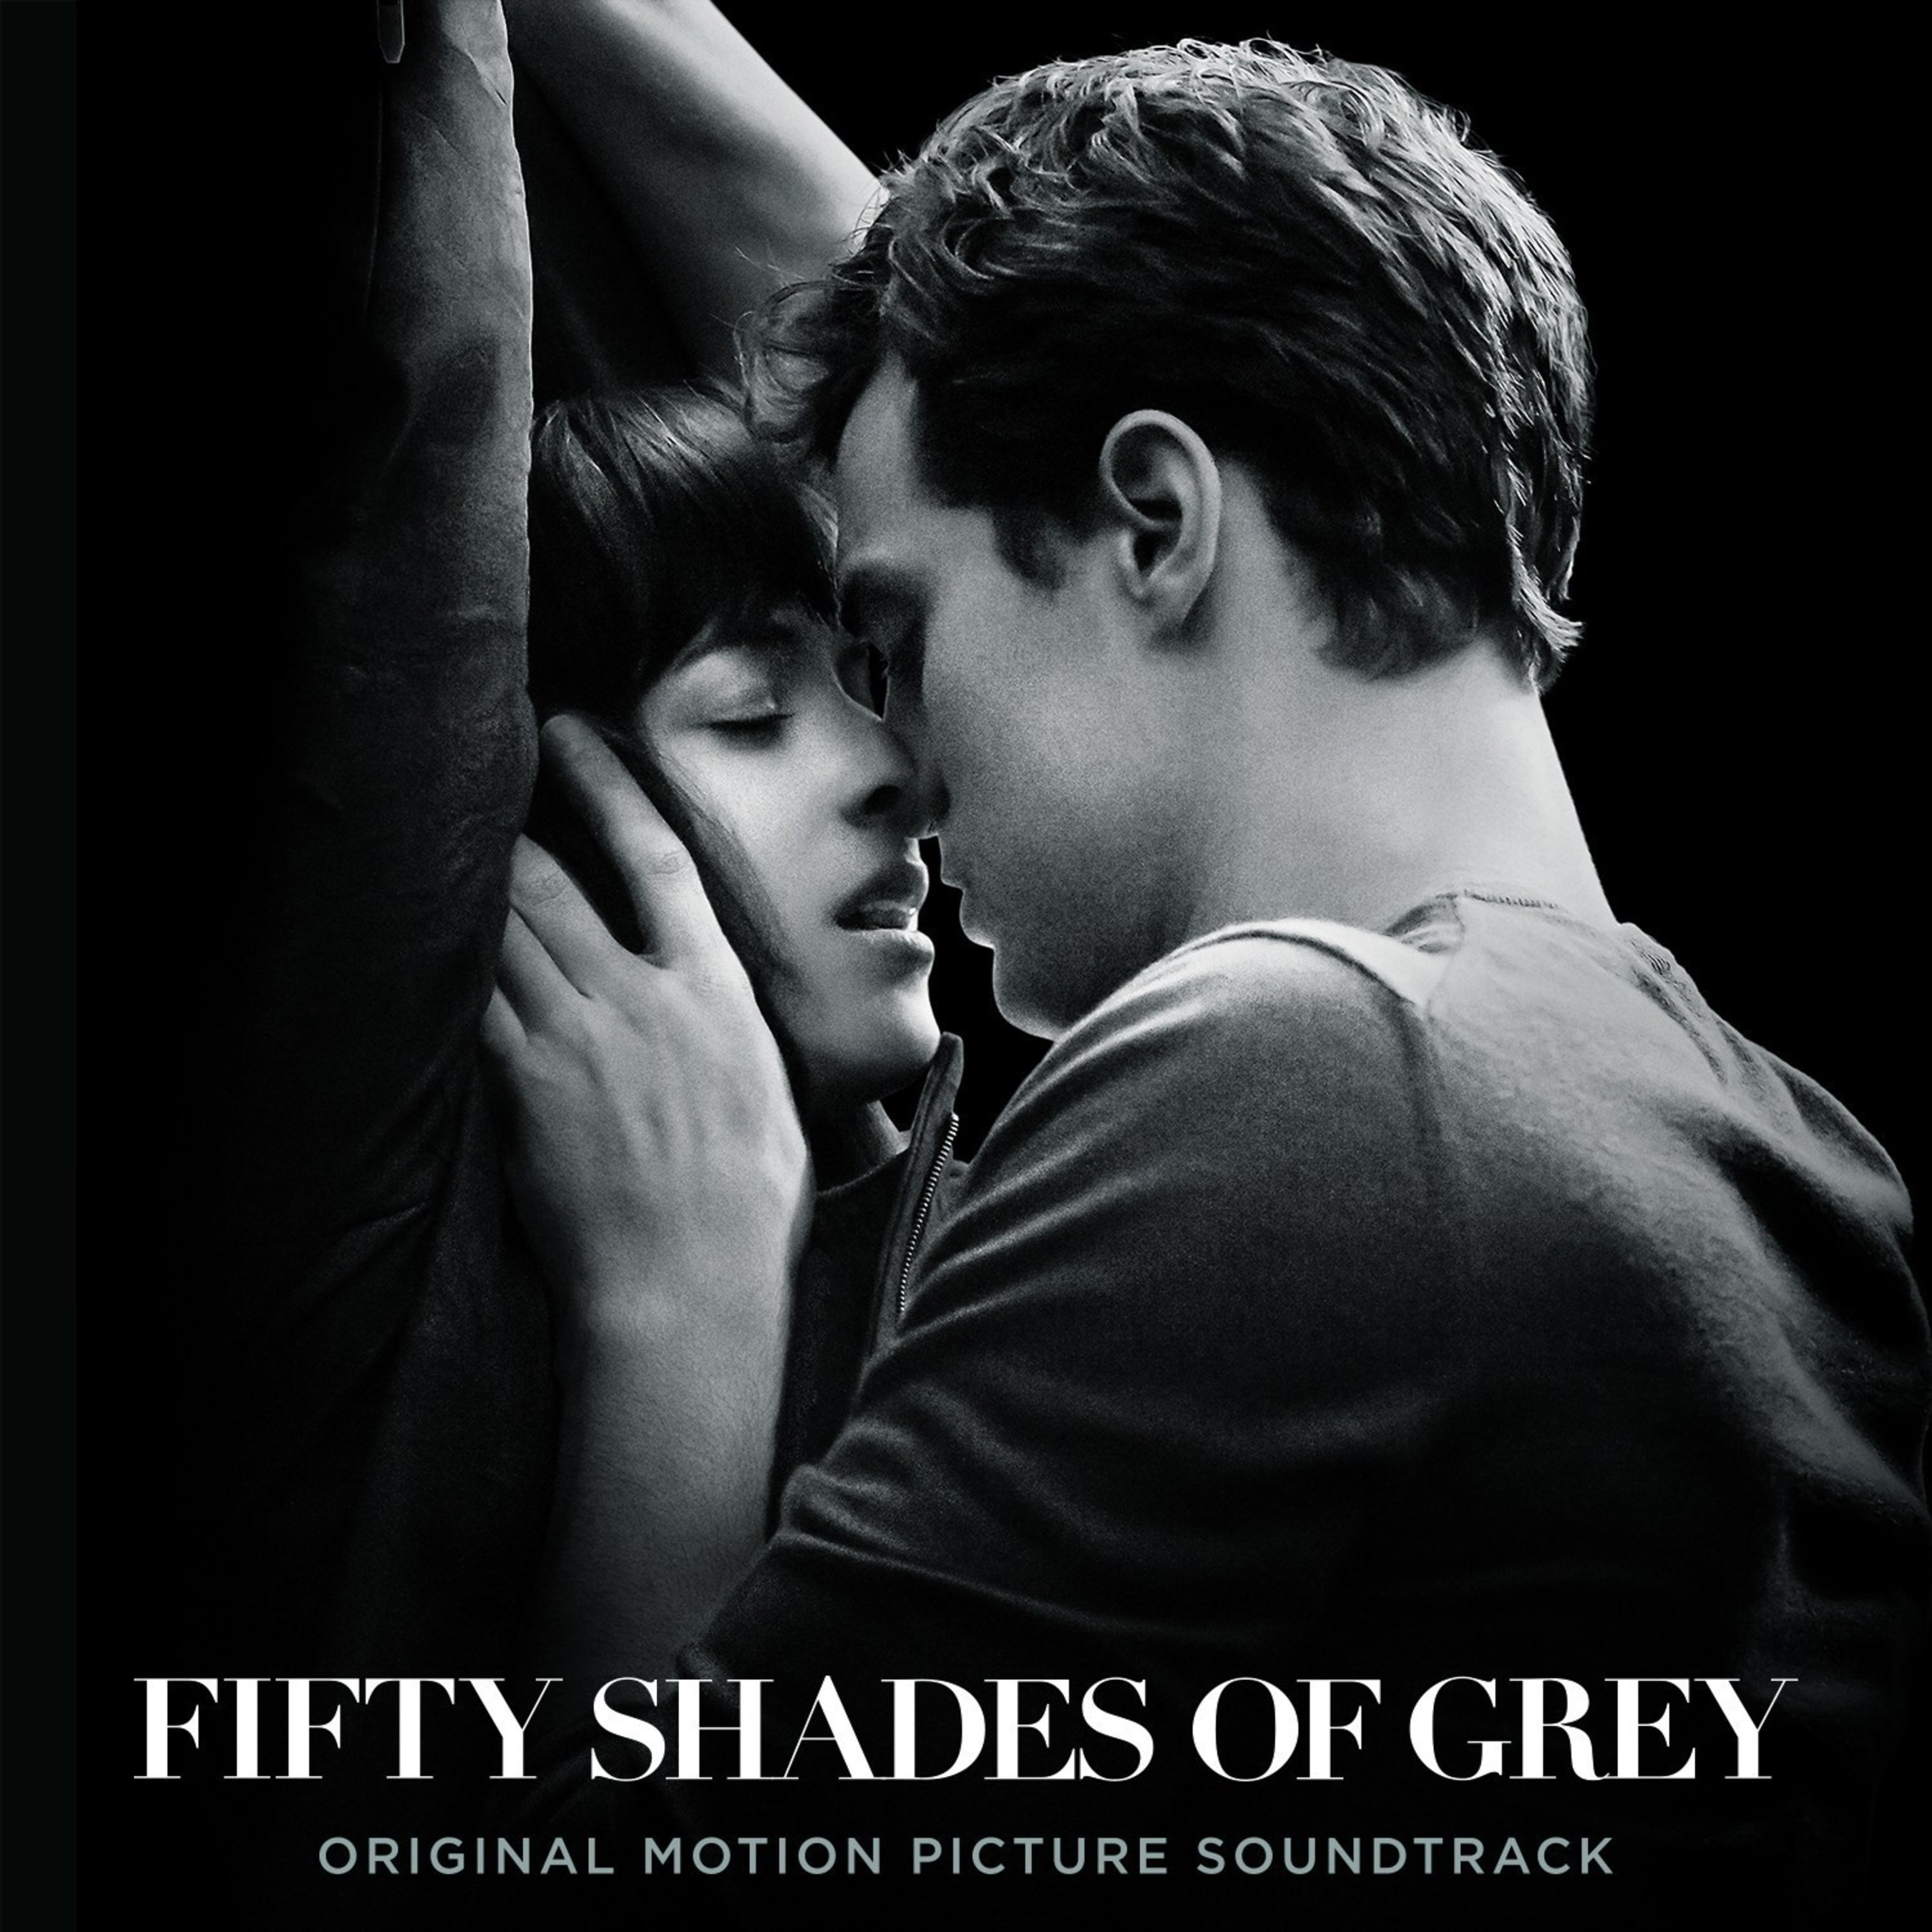 'Fifty Shades Of Grey' Soundtrack Tracklisting And Cover